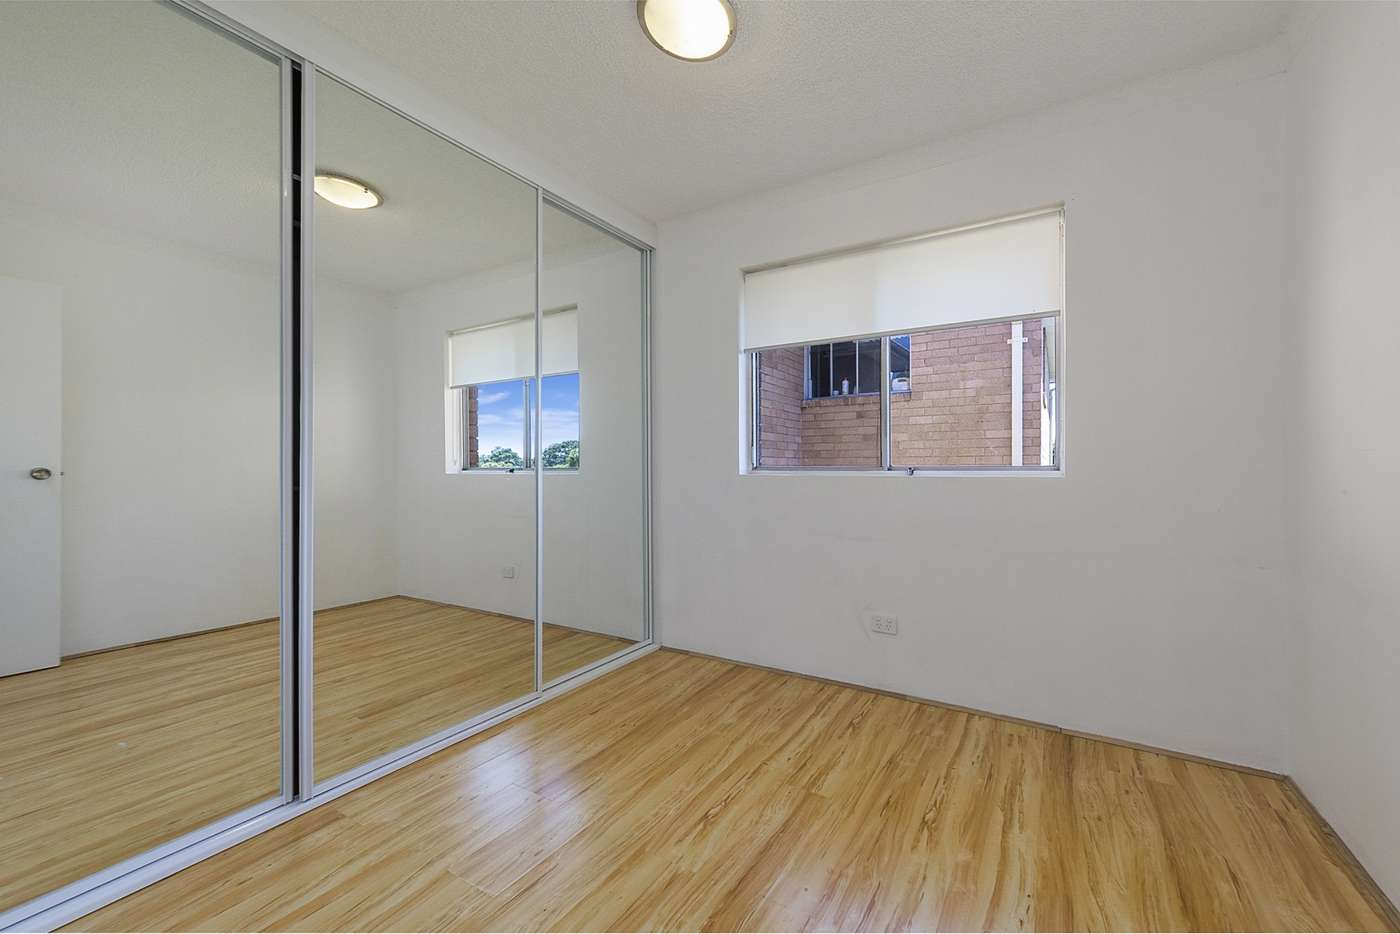 Sixth view of Homely unit listing, 12/64 Sproule street, Lakemba NSW 2195